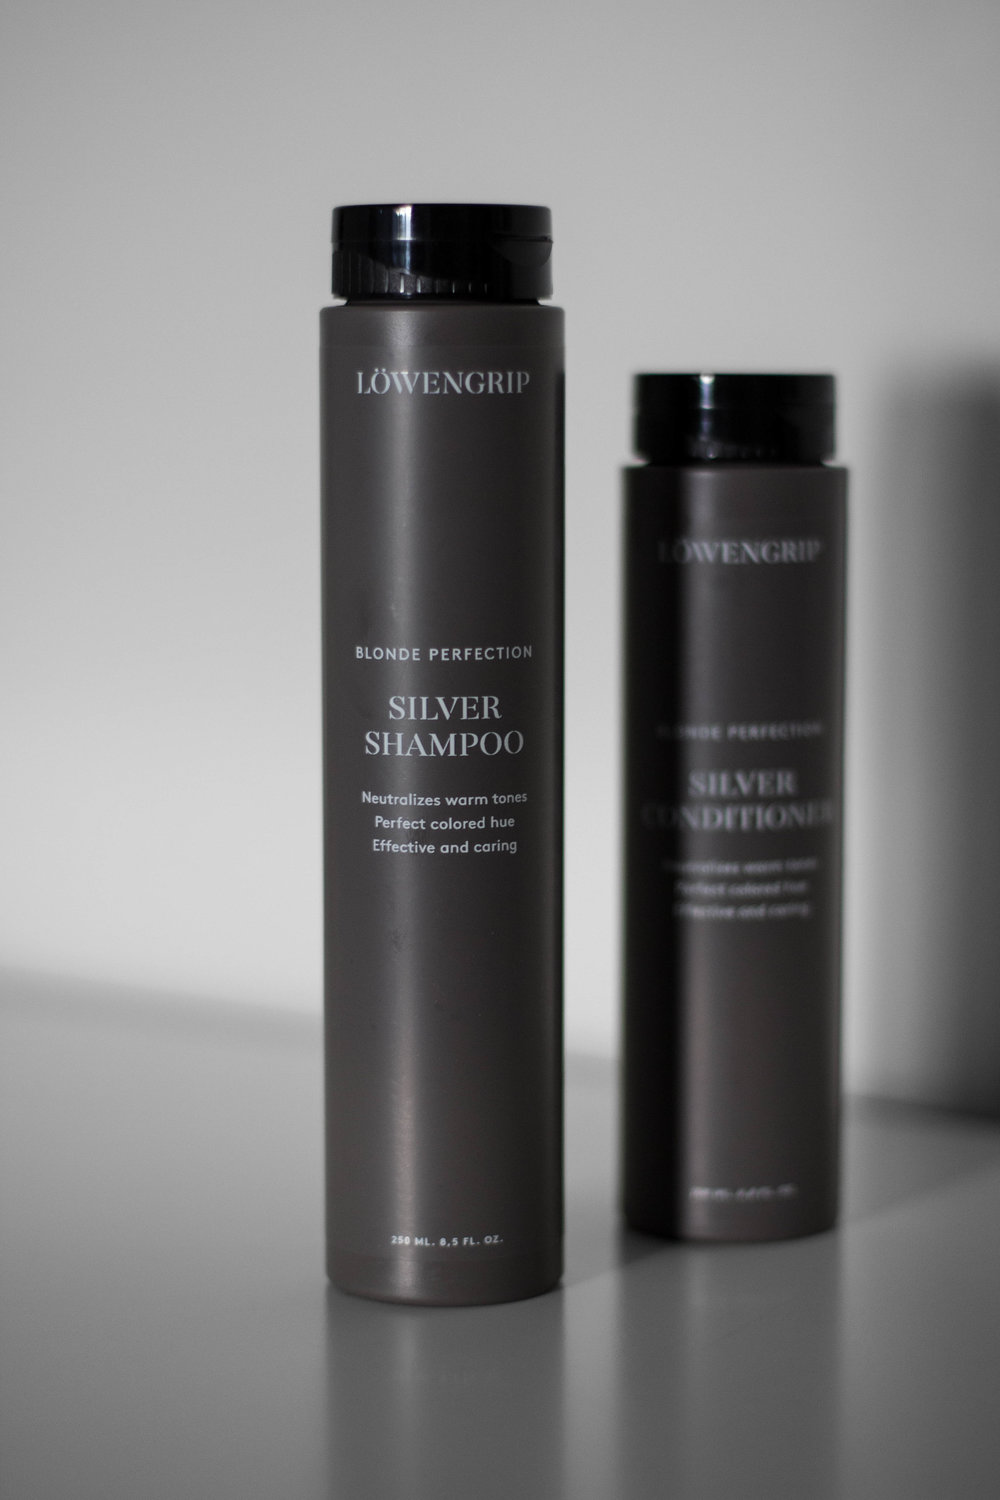 löwengrip, healthyhair, shampoo,aboutthatlook, beauty, care, blonde hair, silvershampoo